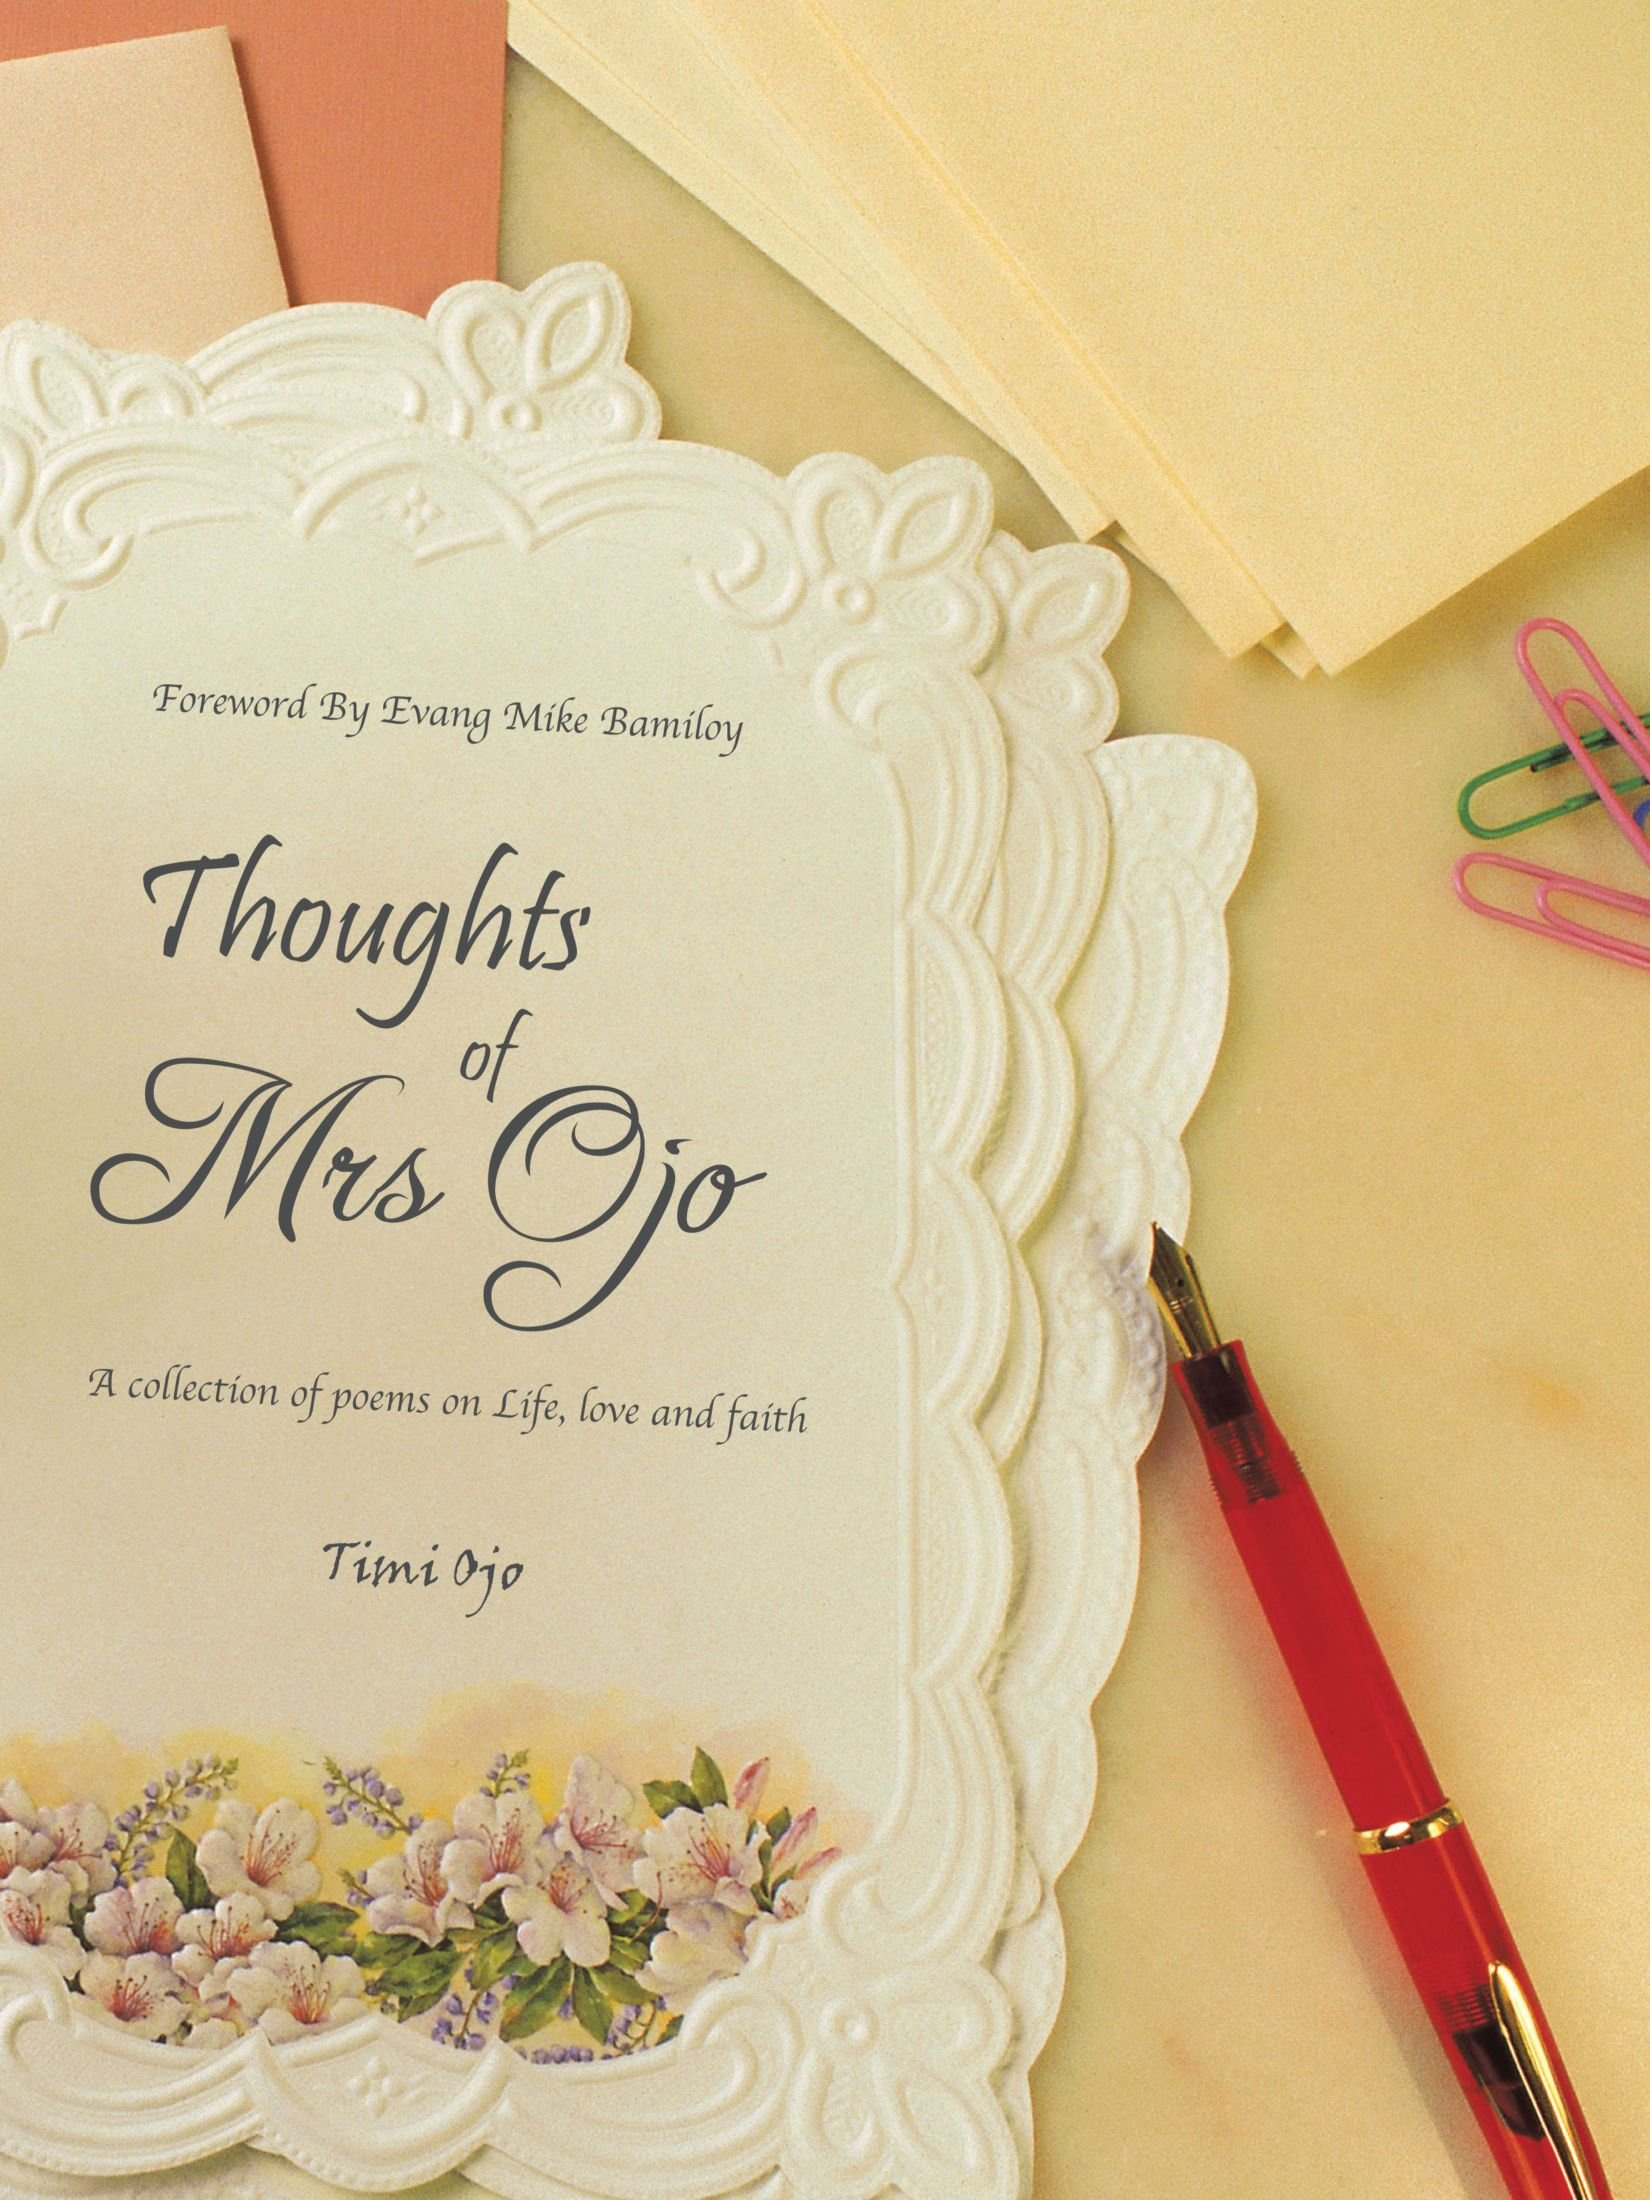 Thoughts of Mrs Ojo: (A collection of poems on Life, love and faith)